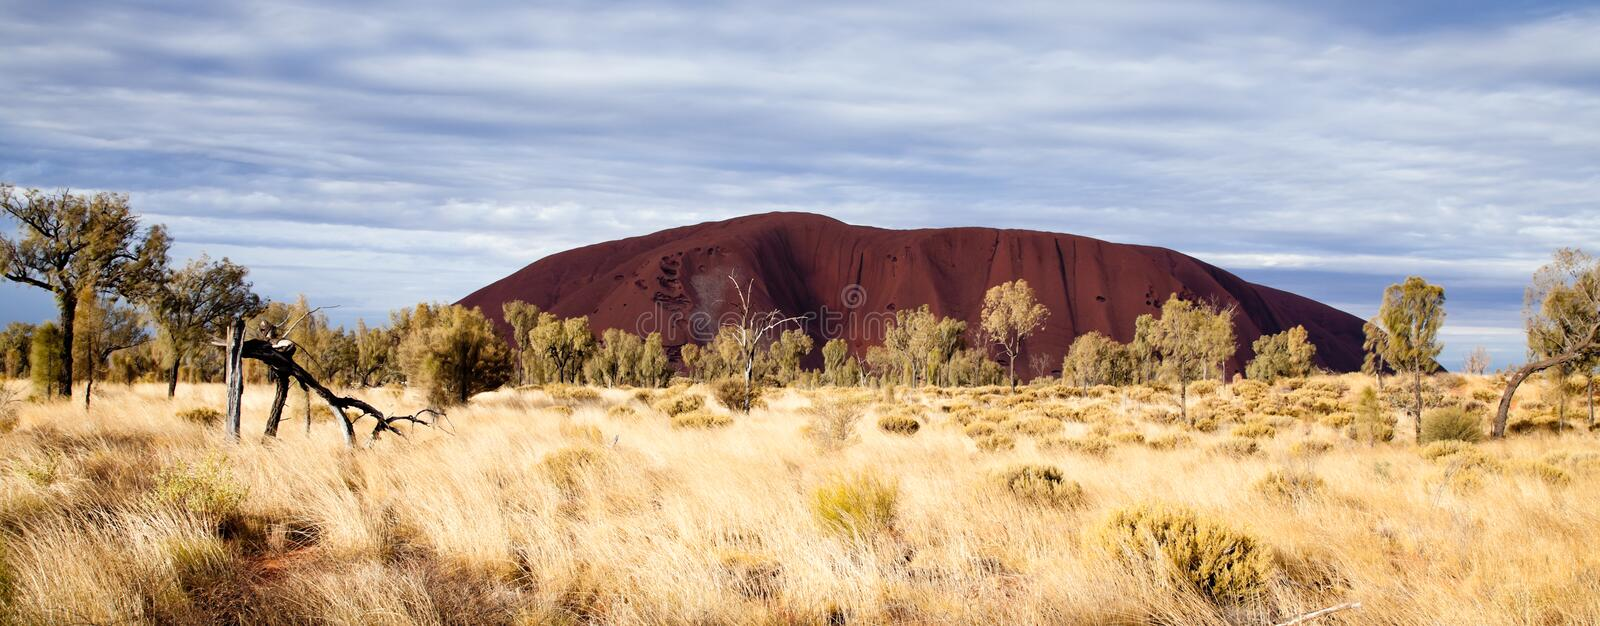 Uluru - Ayers Rock. Aboriginal sacred place. UNESO world heritage. Afternoon sun is color painting red sandstone rock royalty free stock photos